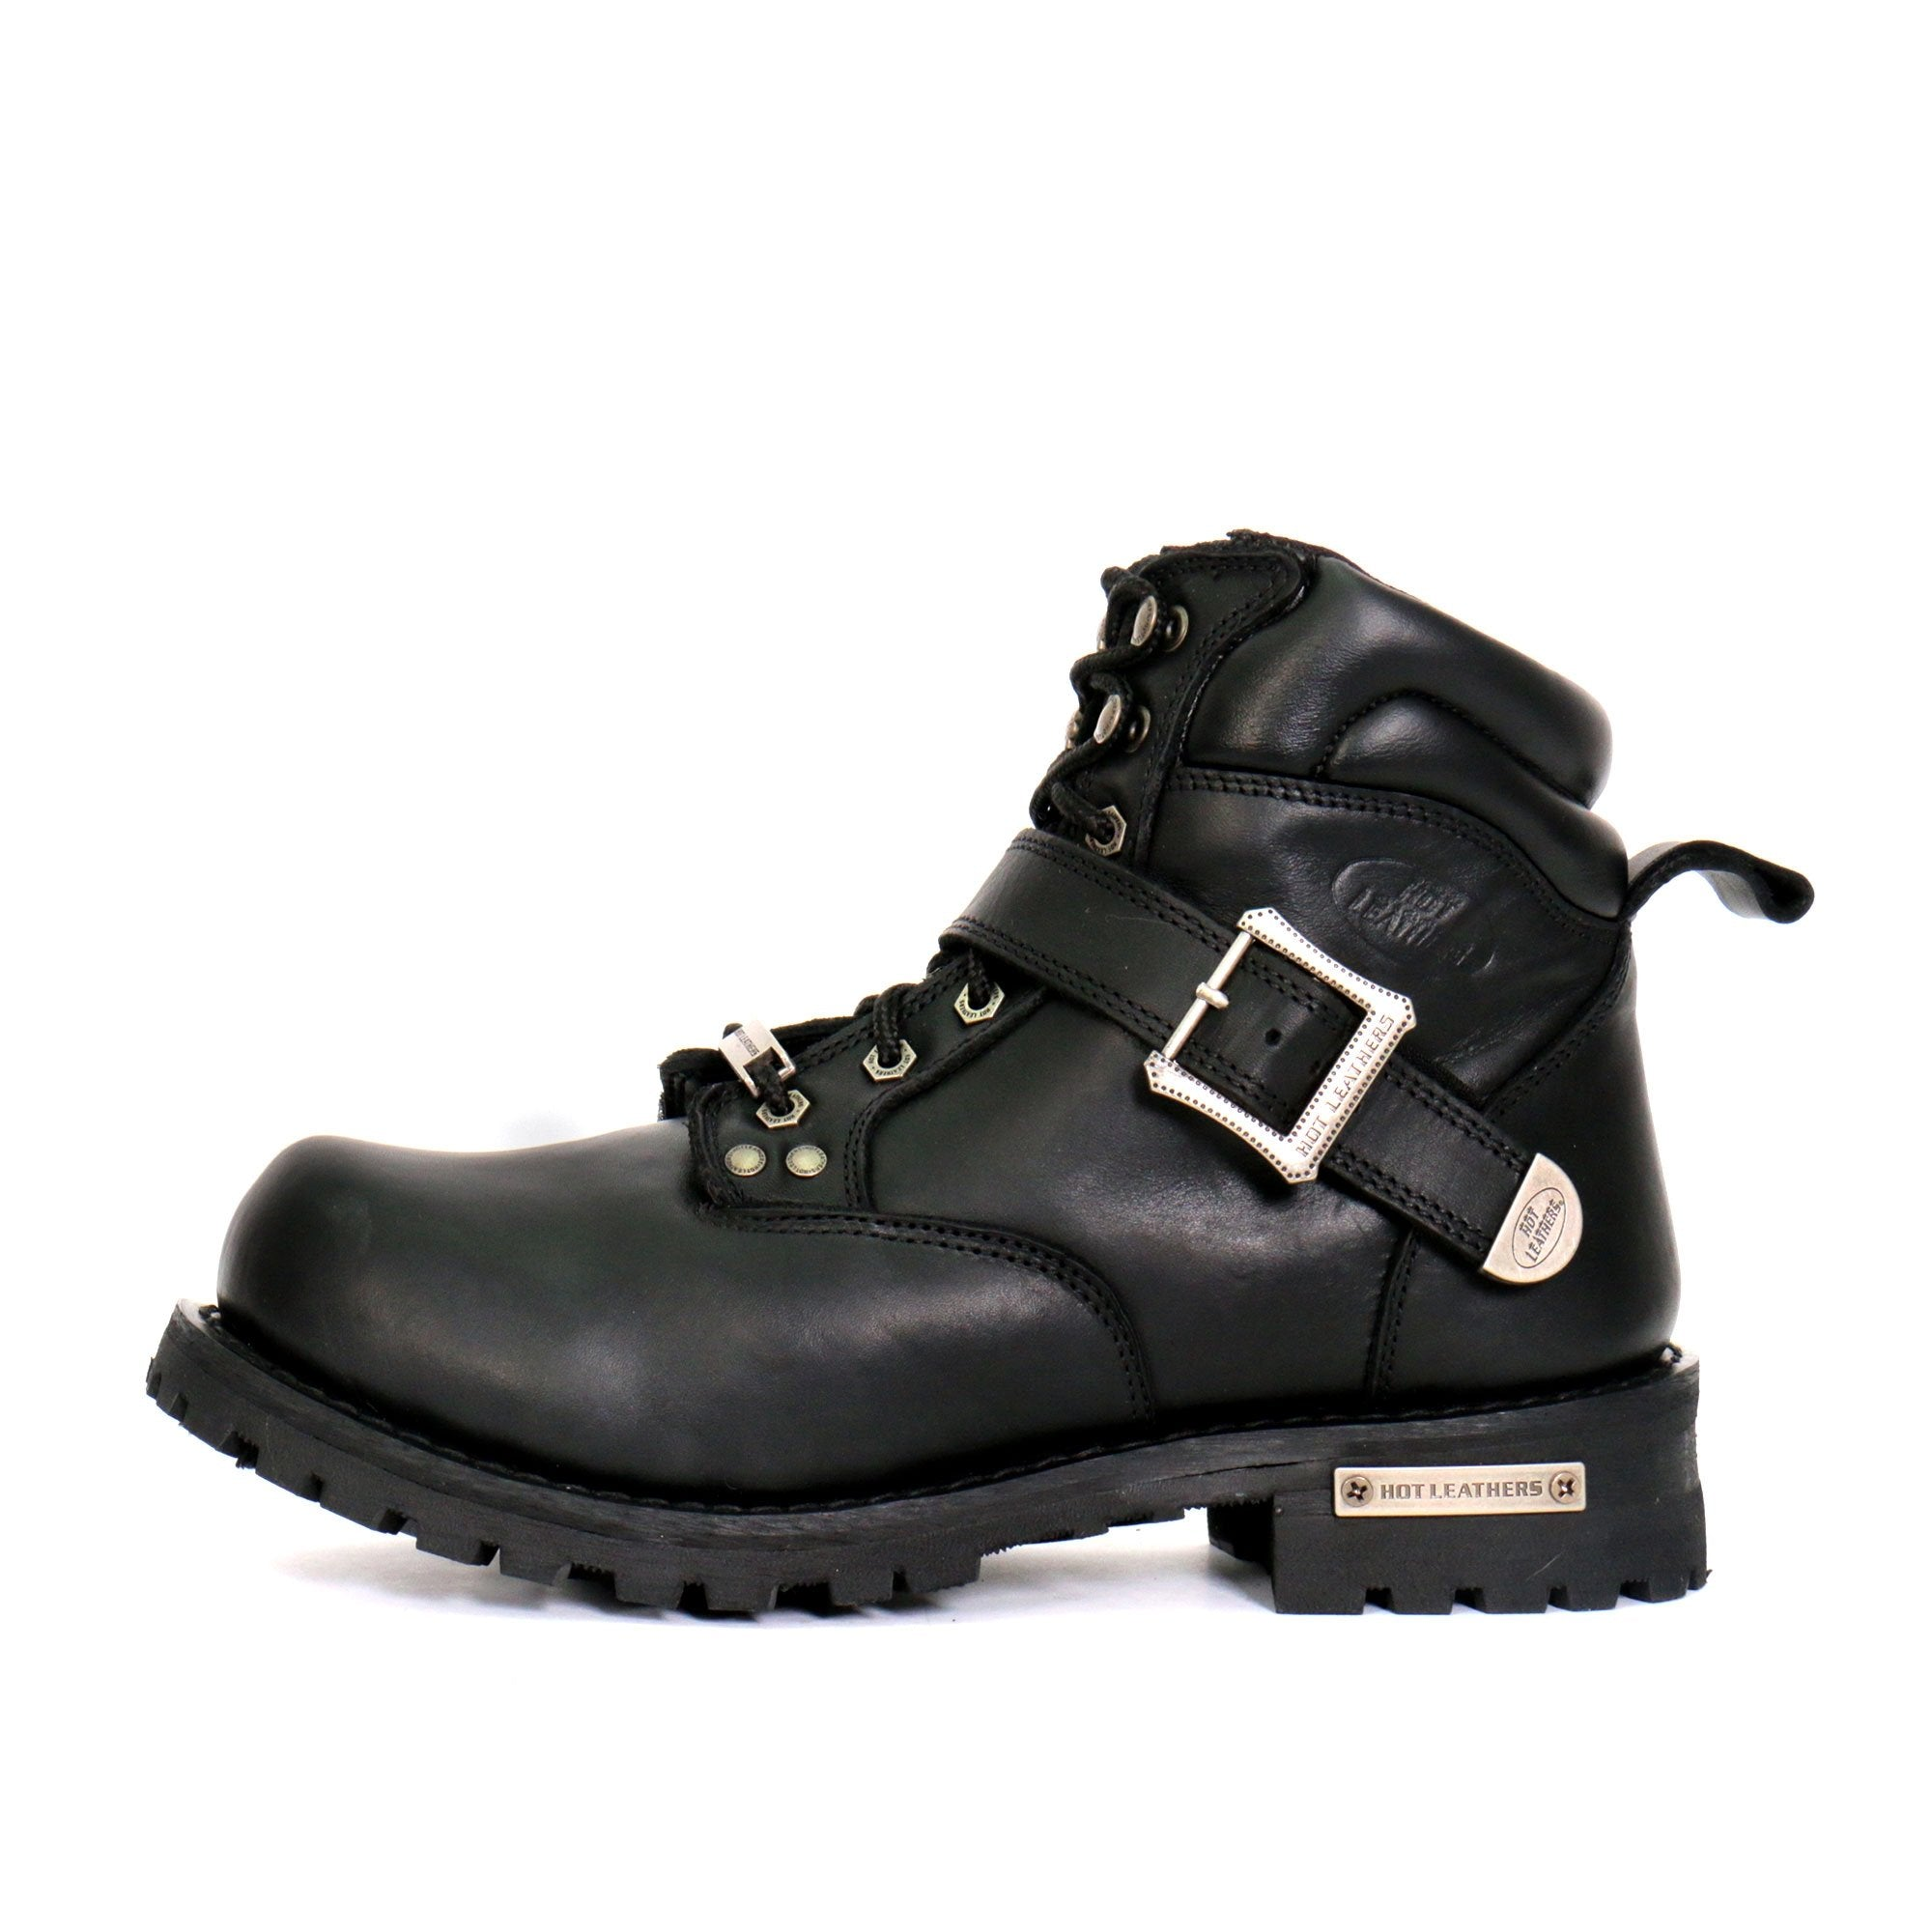 "Hot Leathers Men's 6"" Logger Boots with Buckle"